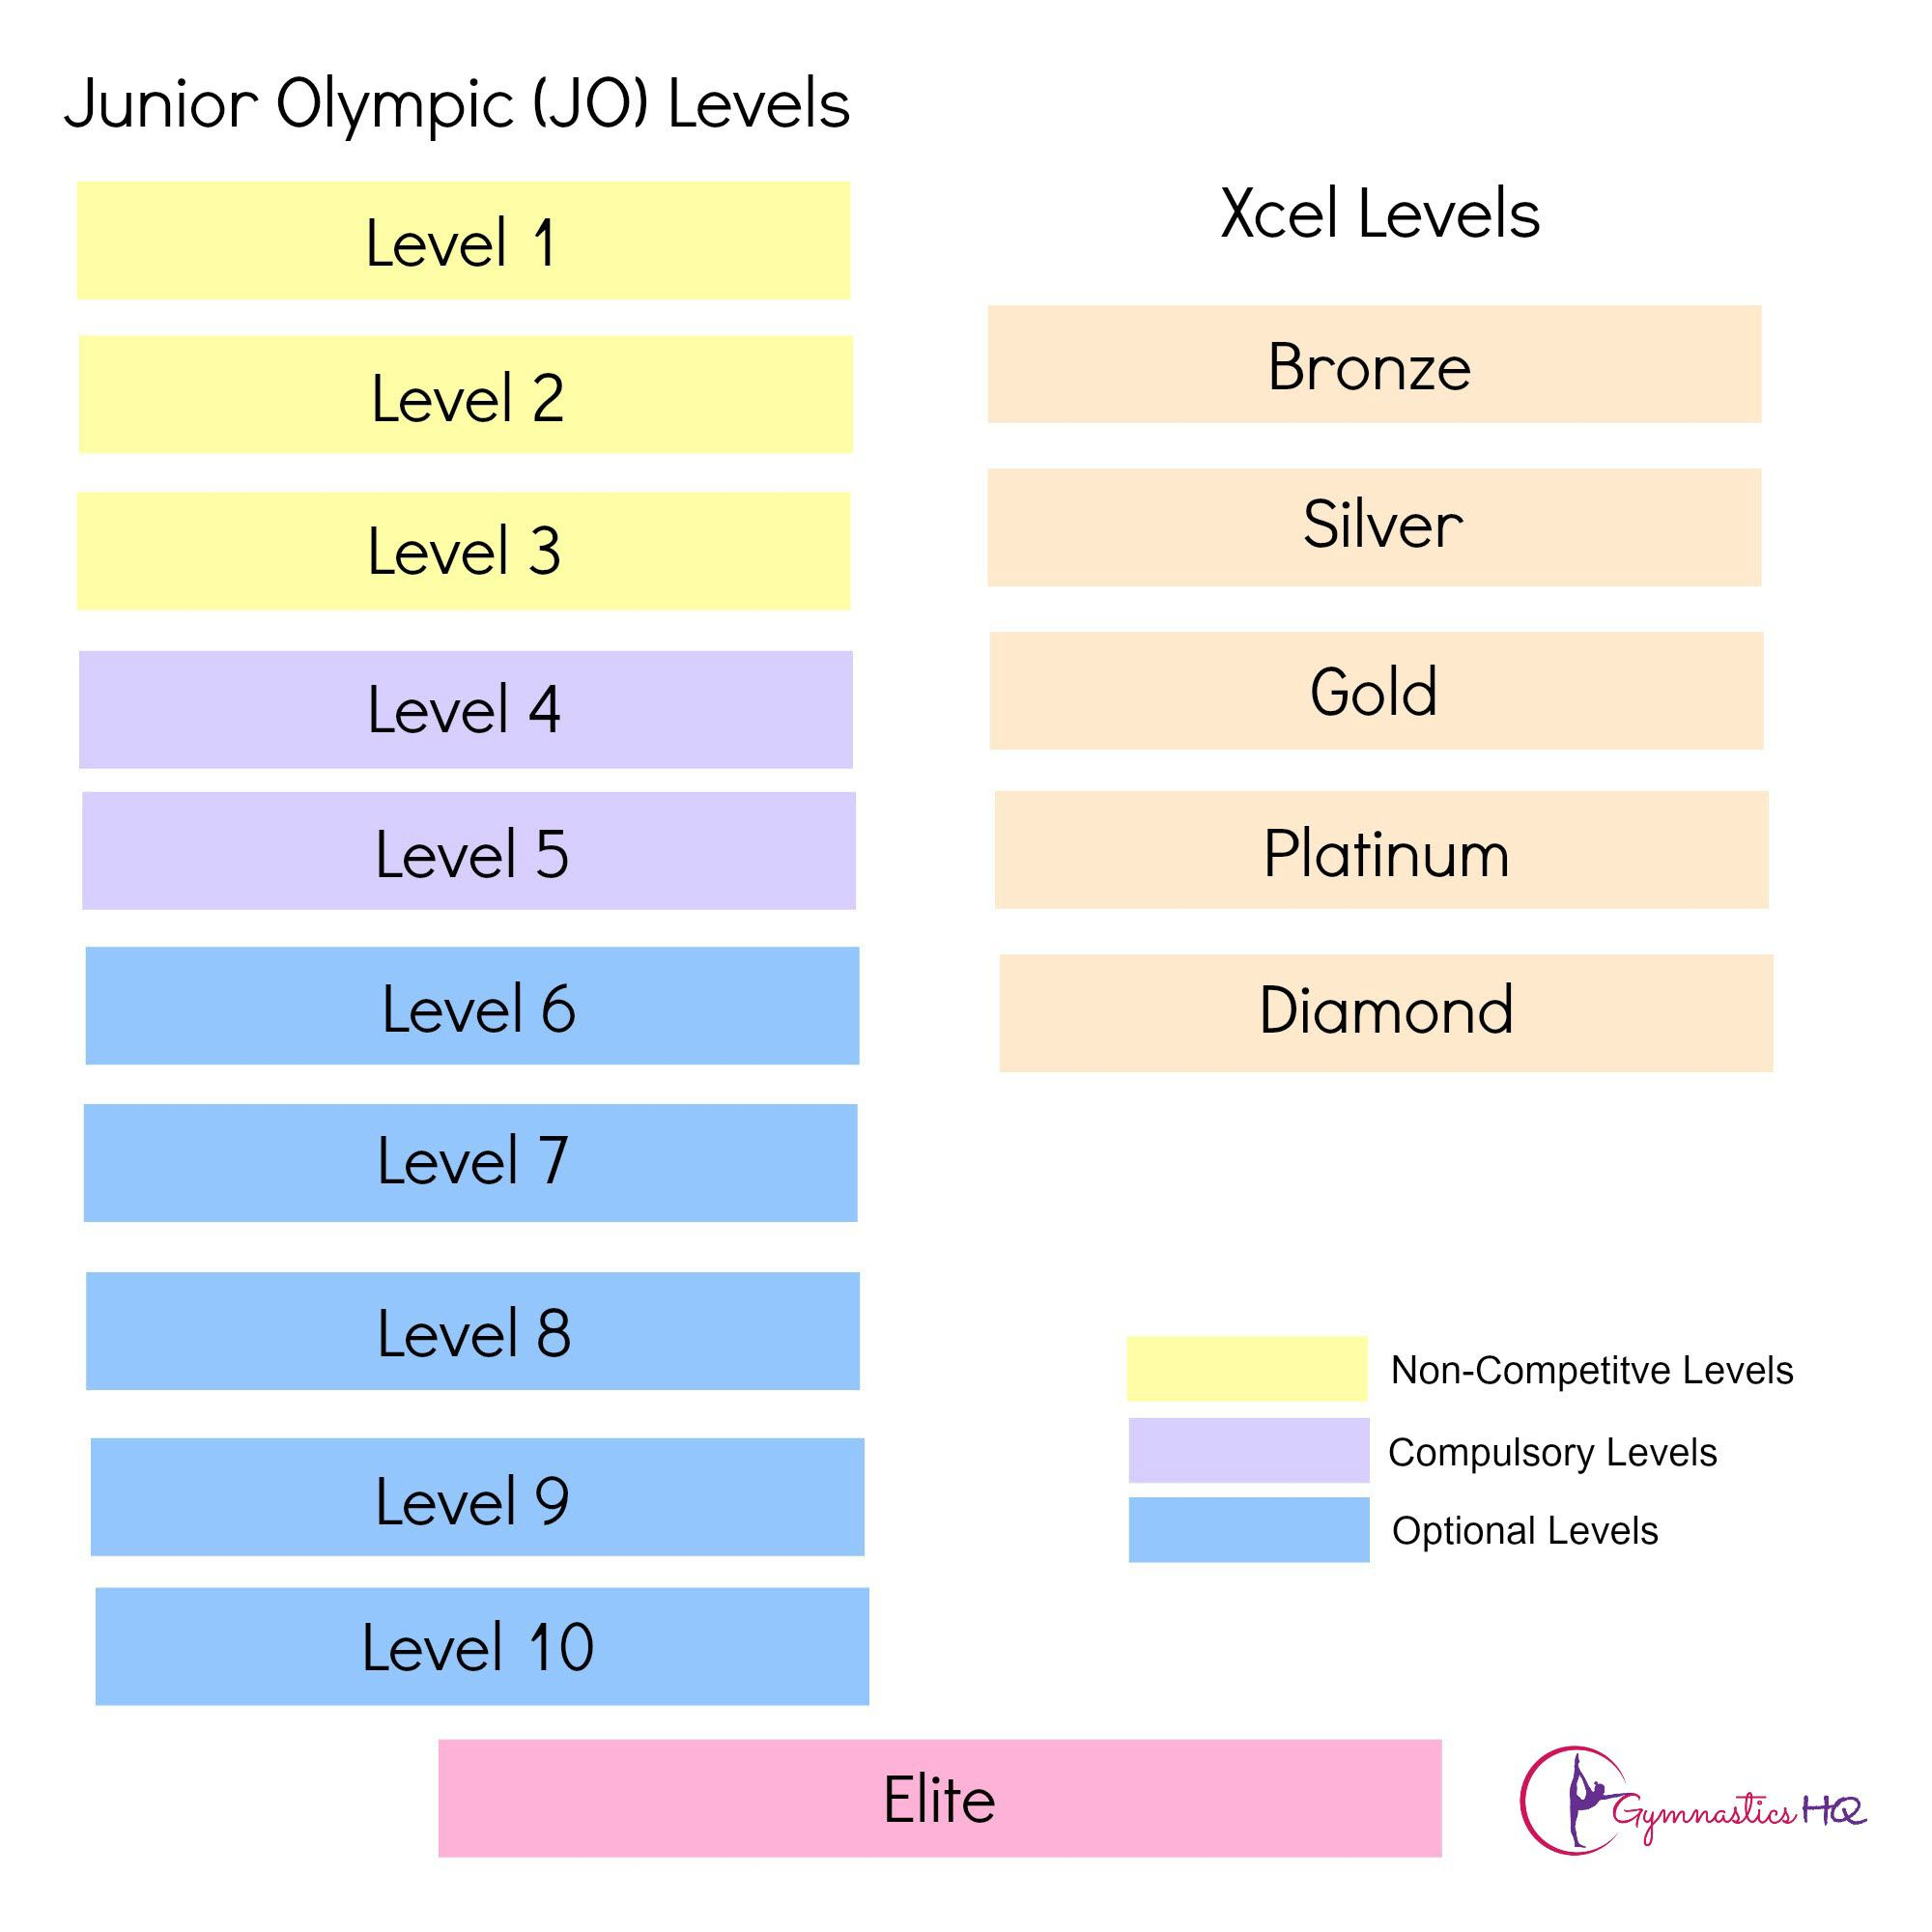 Overview Of USA Gymnastics Gymnastic Levels--both The JO